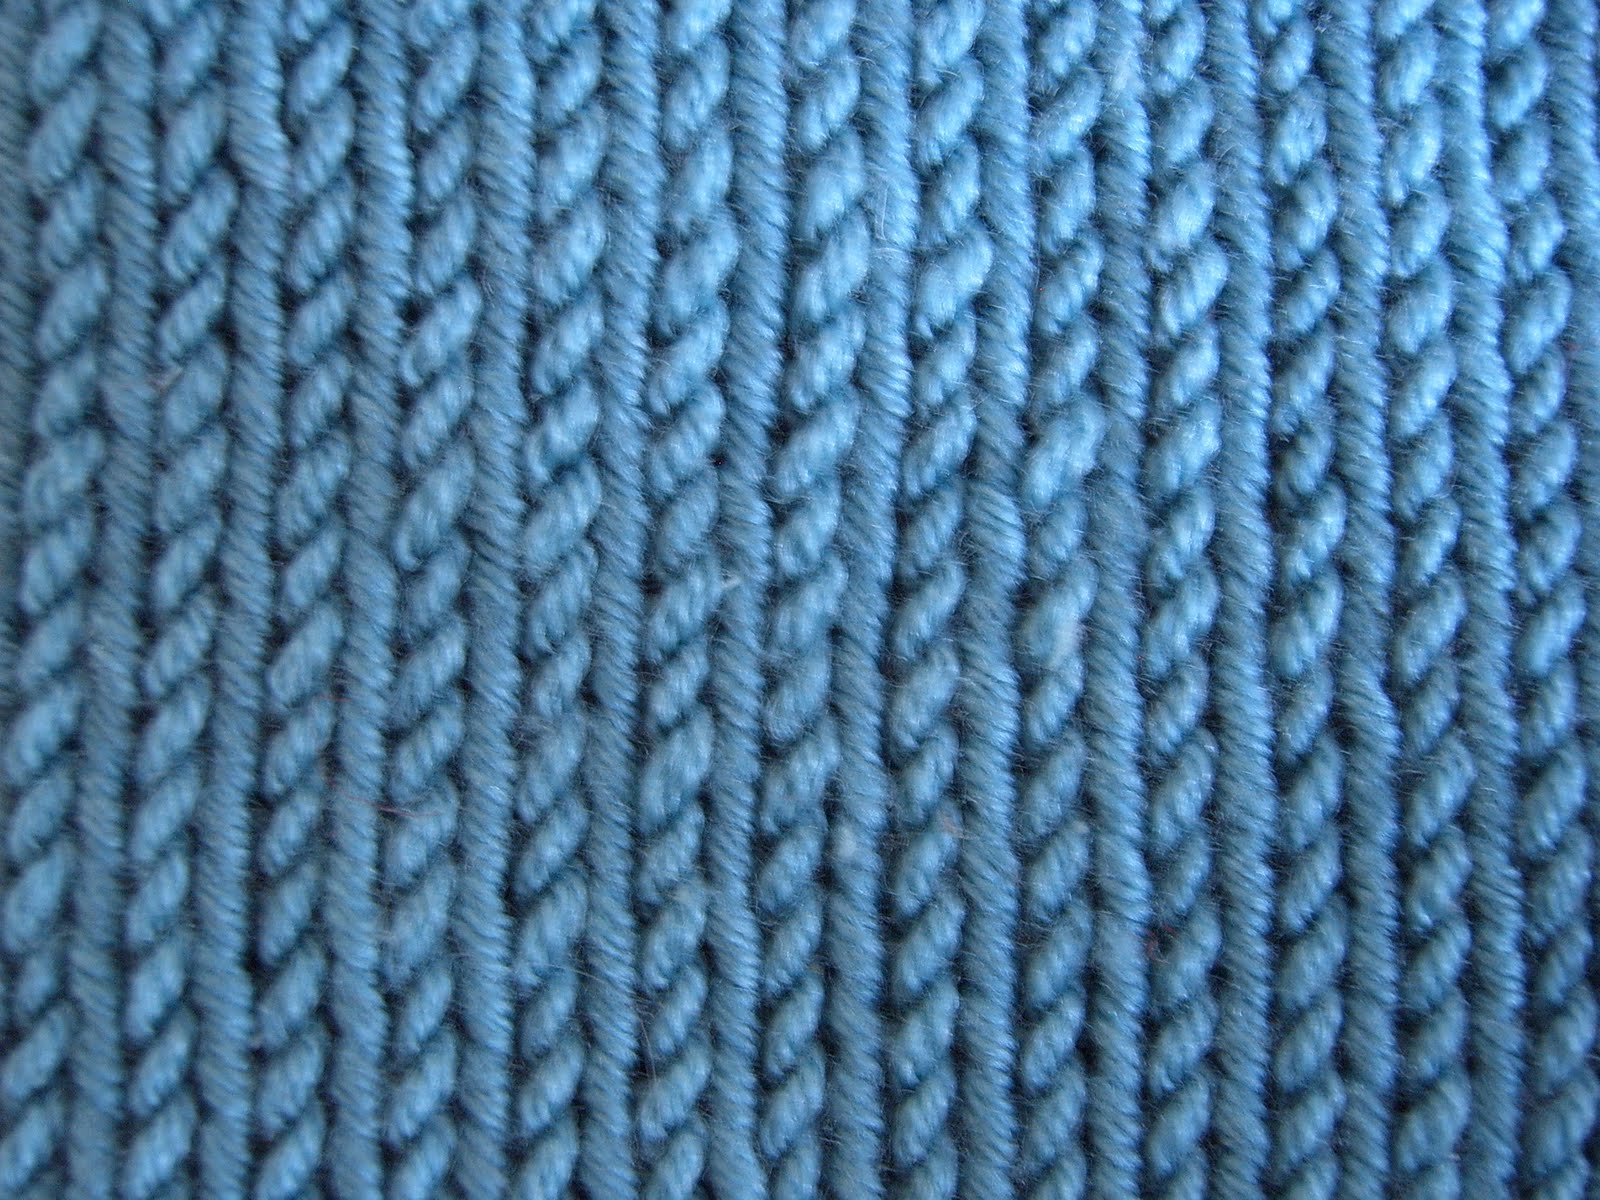 Knitting Undo Purl Stitch : KNIT PURL PATTERNS - FREE PATTERNS